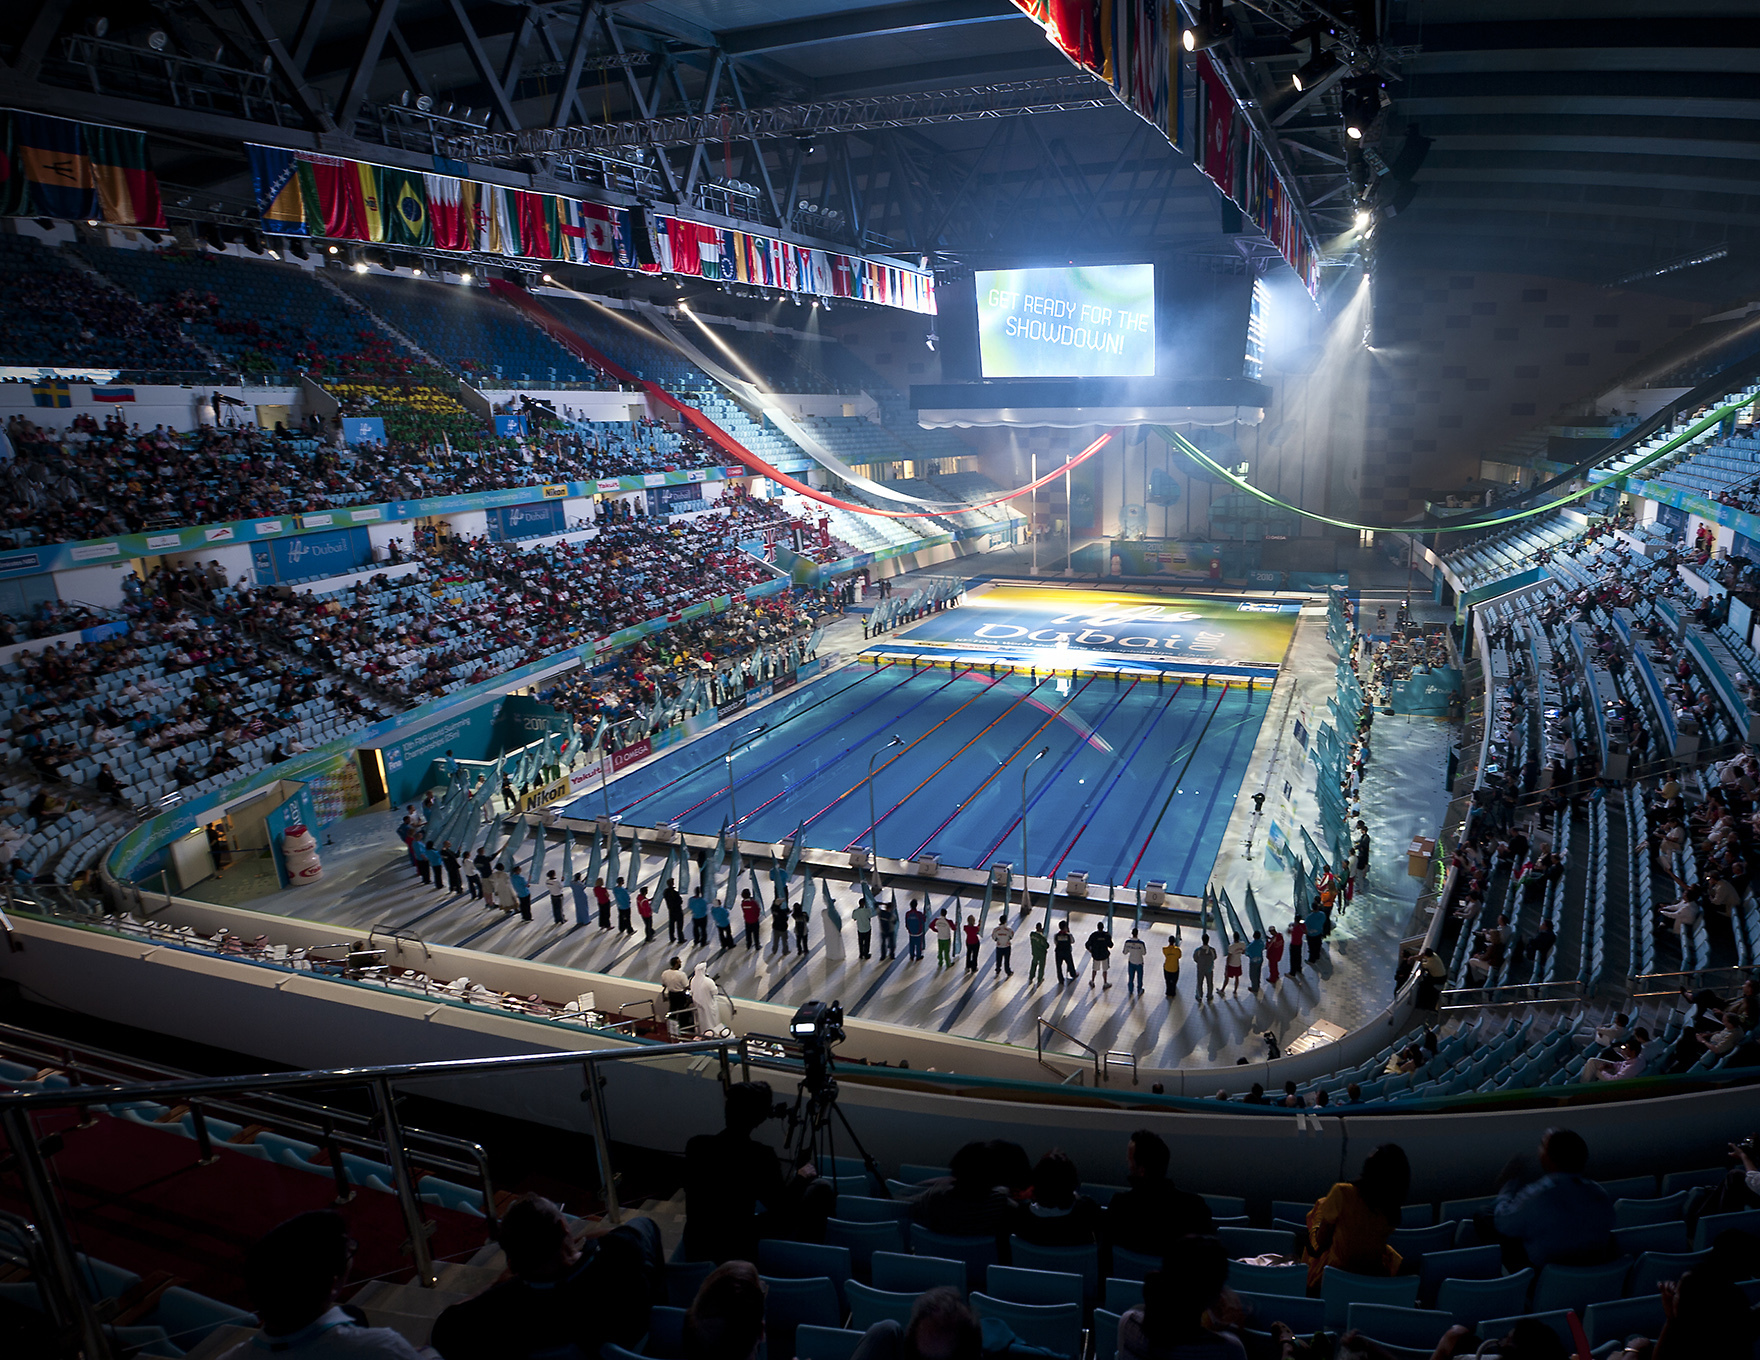 50M Pool Design Expertise Hamdan Sports Complex Dubai Fina World Swimming Championships L